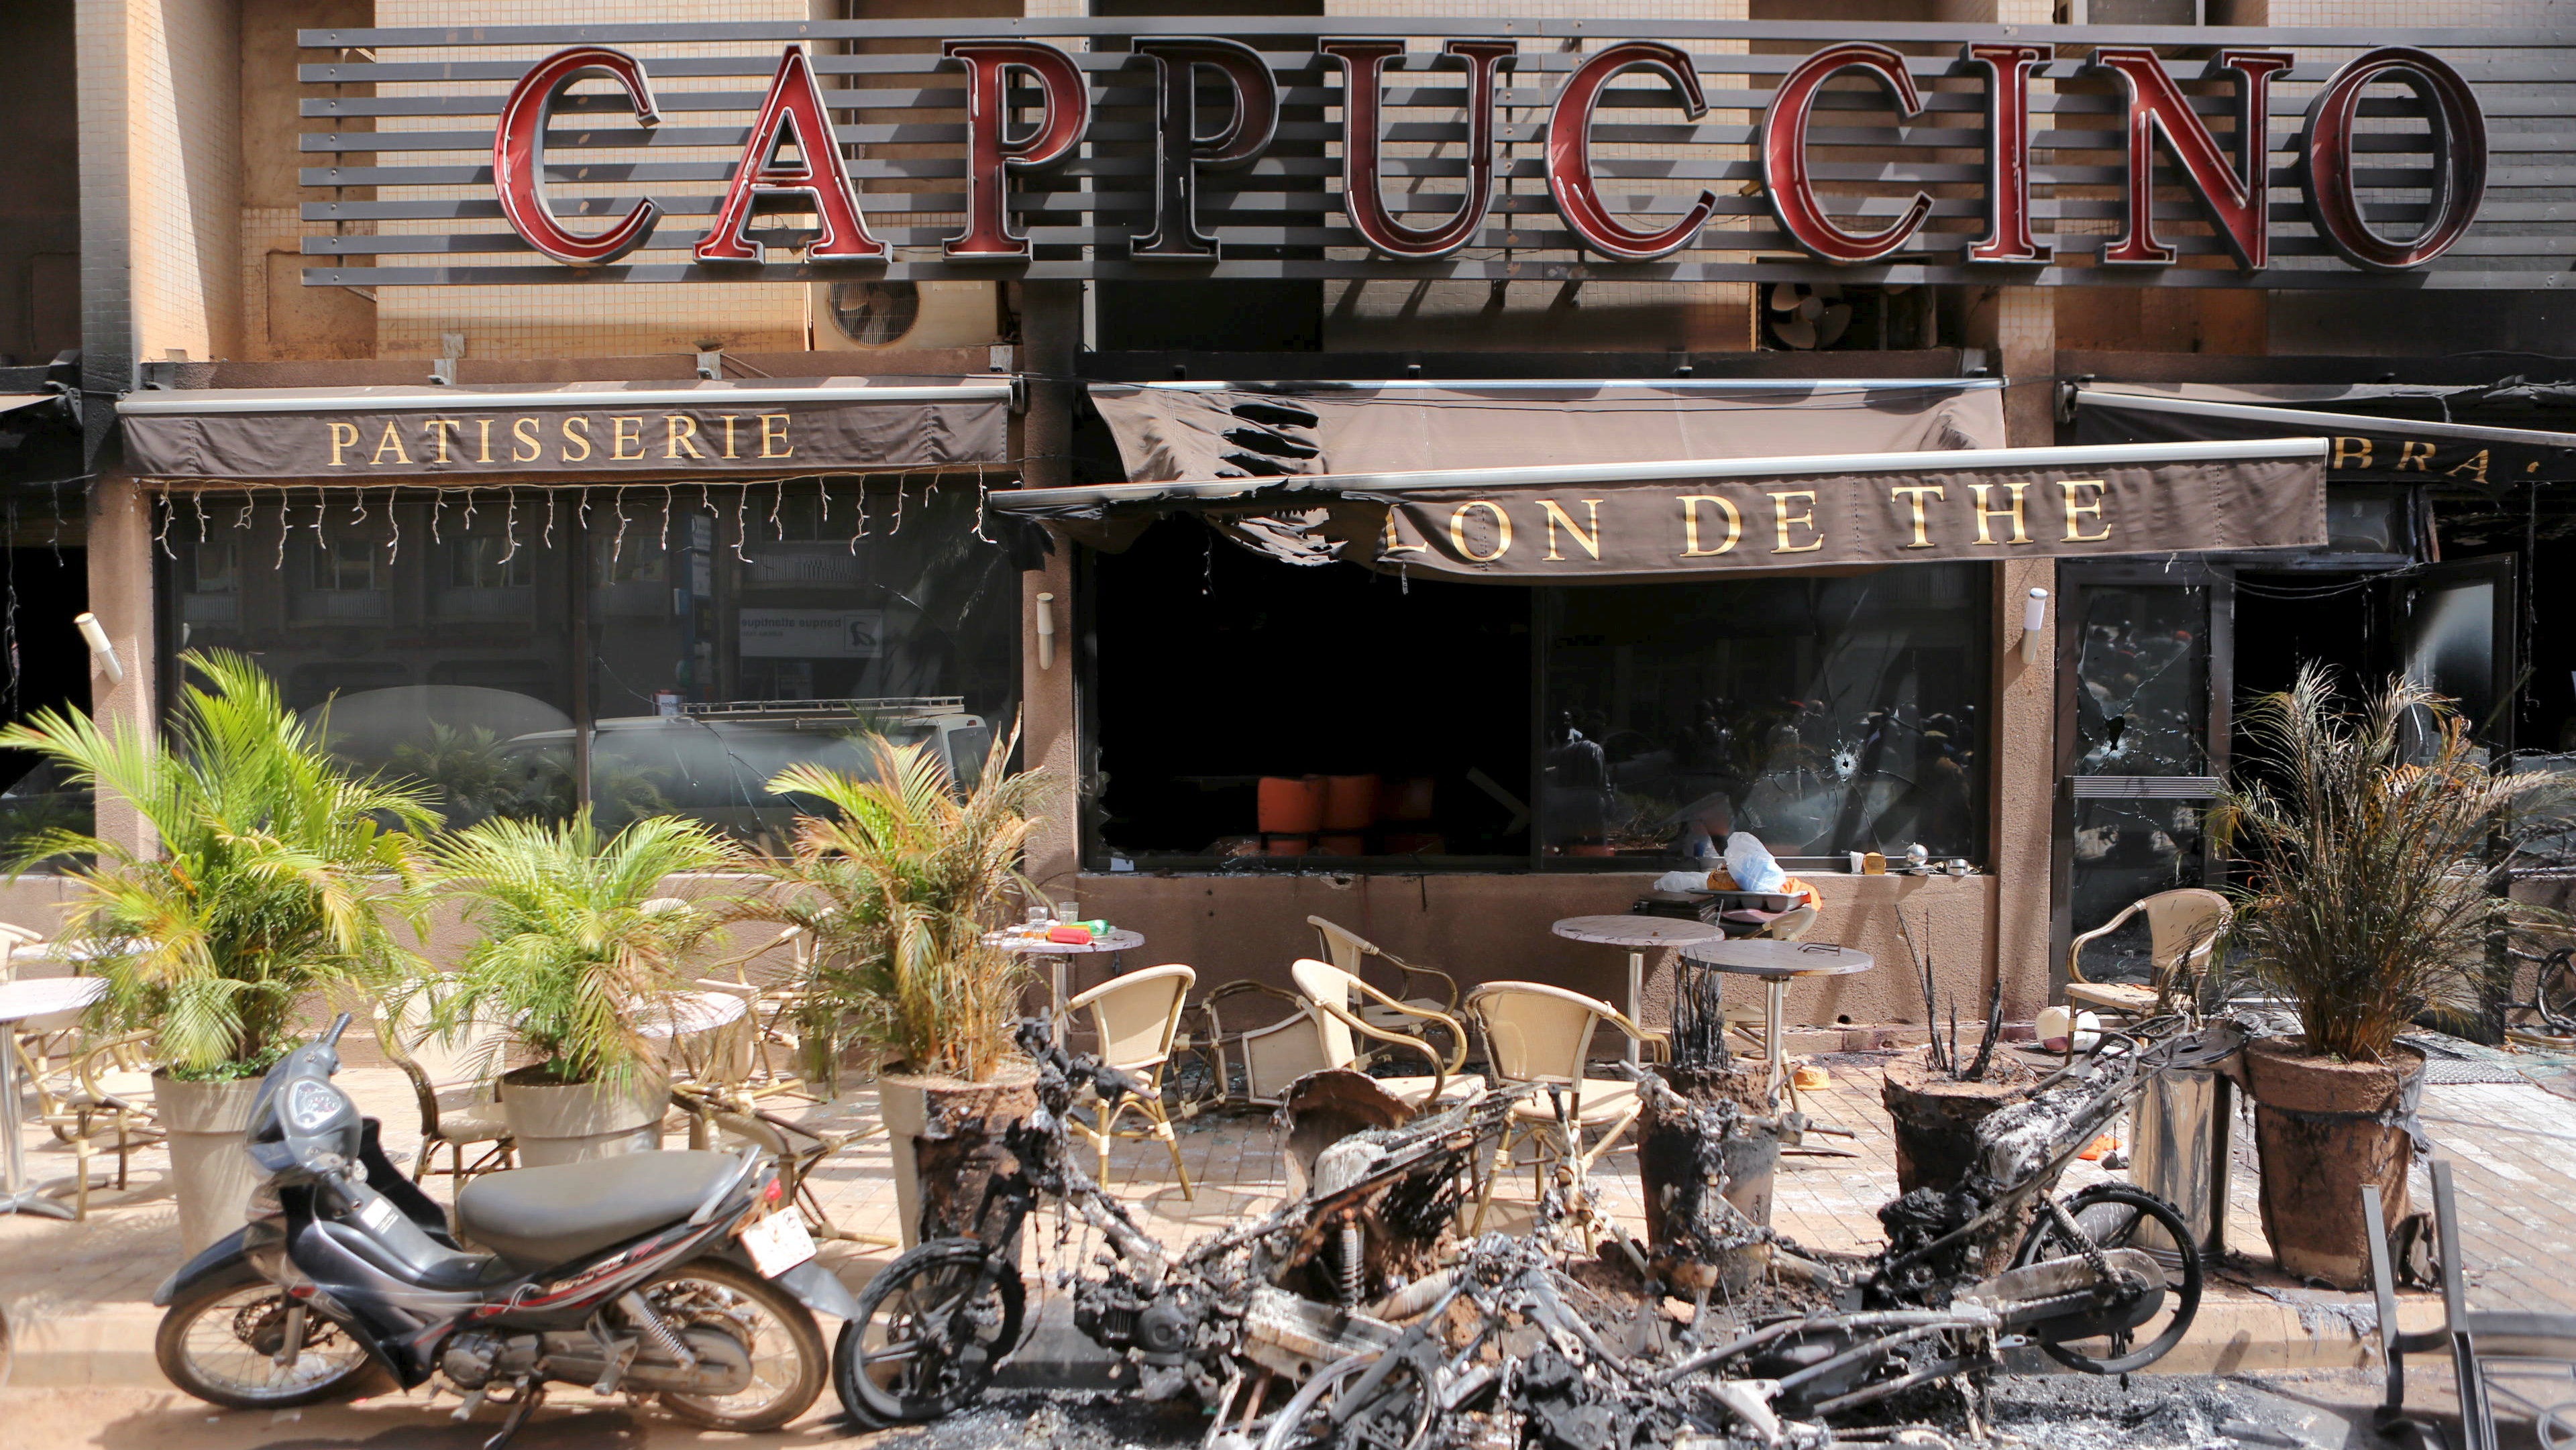 """The burned-out exterior of """"Cappuccino"""" restaurant is seen in Ouagadougou, Burkina Faso, January 17, 2016, a day after security forces retook the Splendid Hotel from al Qaeda fighters who seized it in an assault that killed two dozen people from at least 18 countries and marked a major escalation of Islamist militancy in West Africa."""